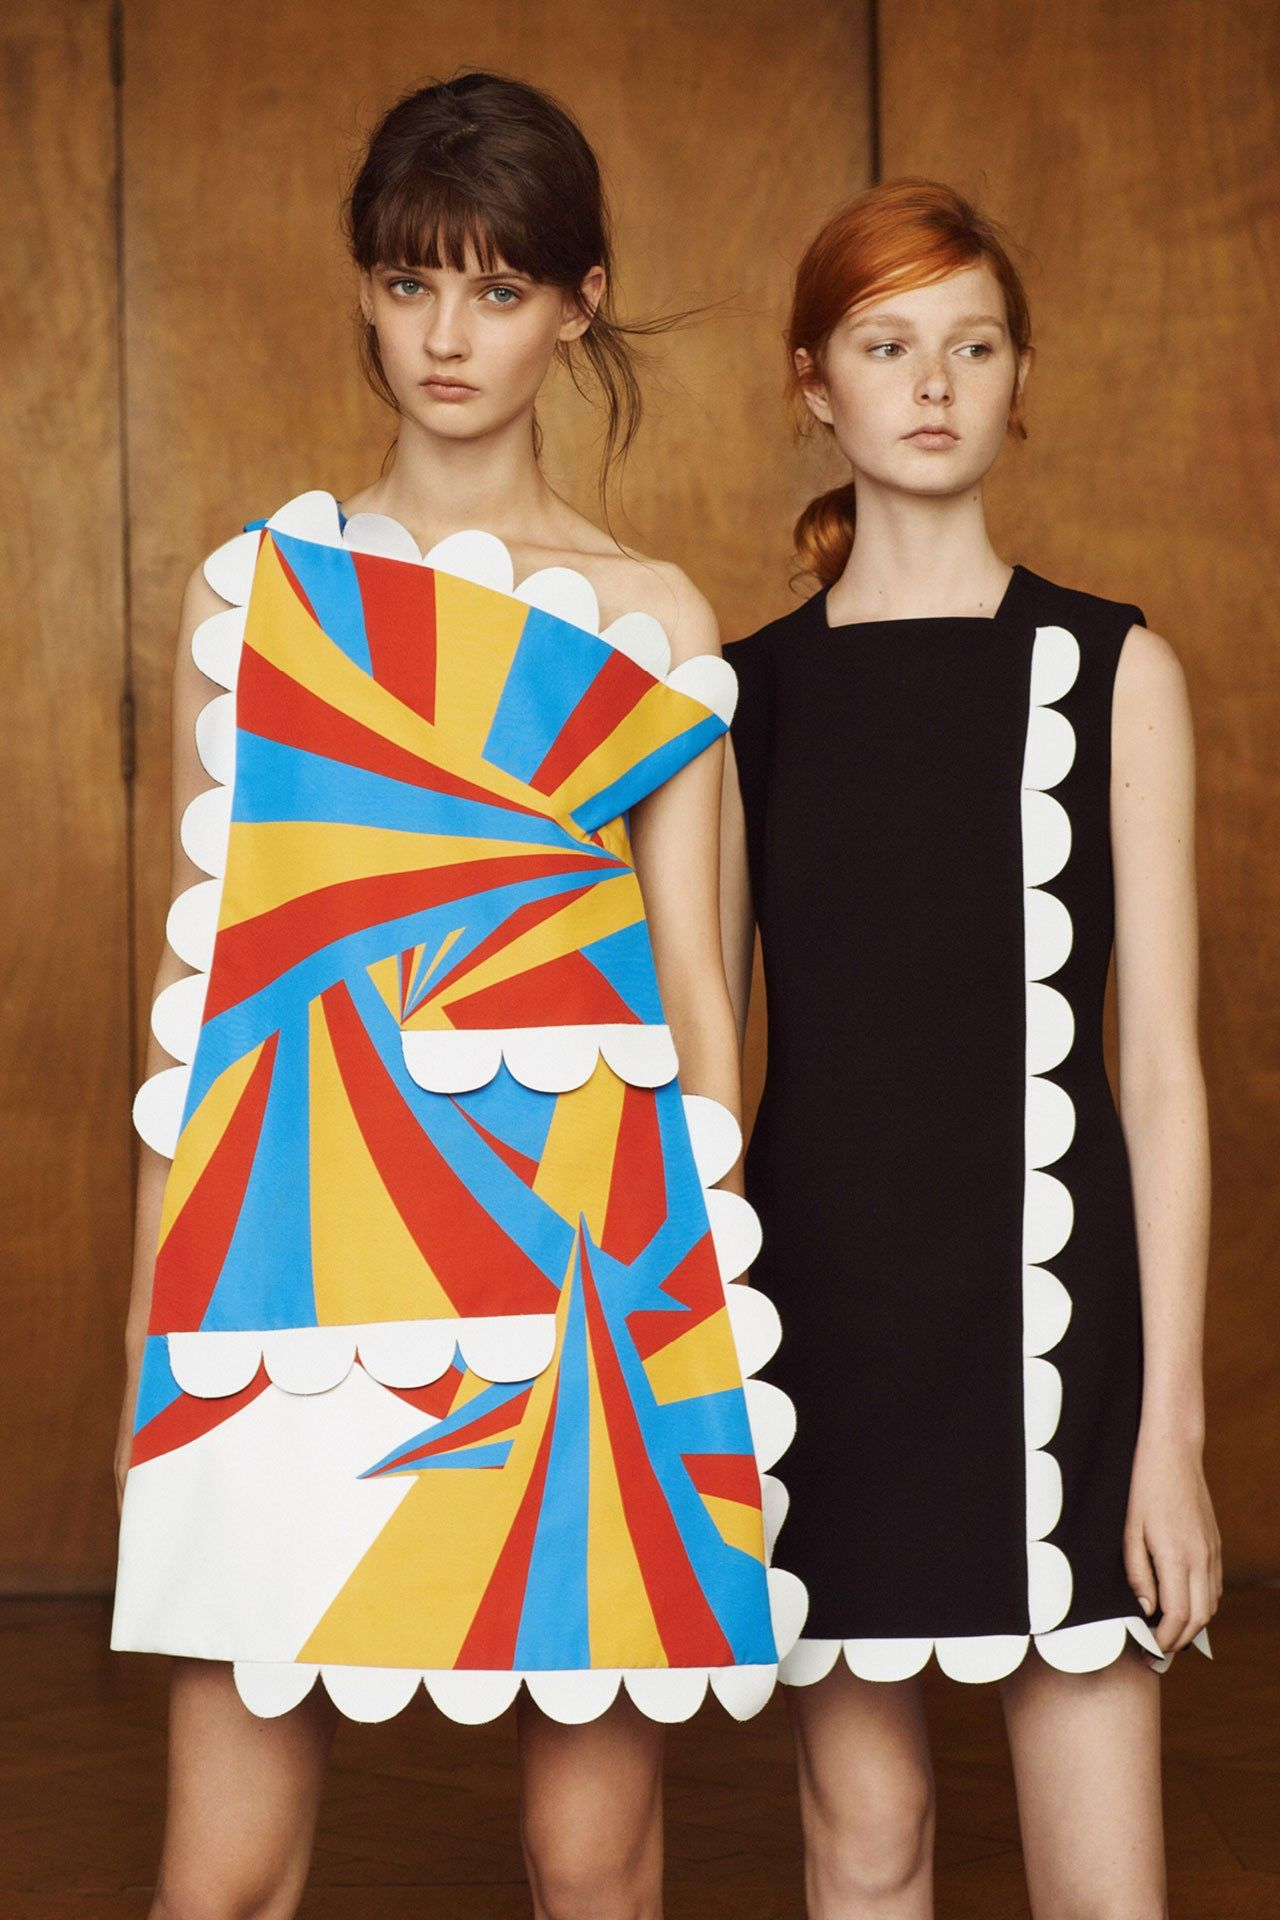 Victoria Victoria Beckham First Look New Pre Spring Summer 2016 collection (Vogue.co.uk)